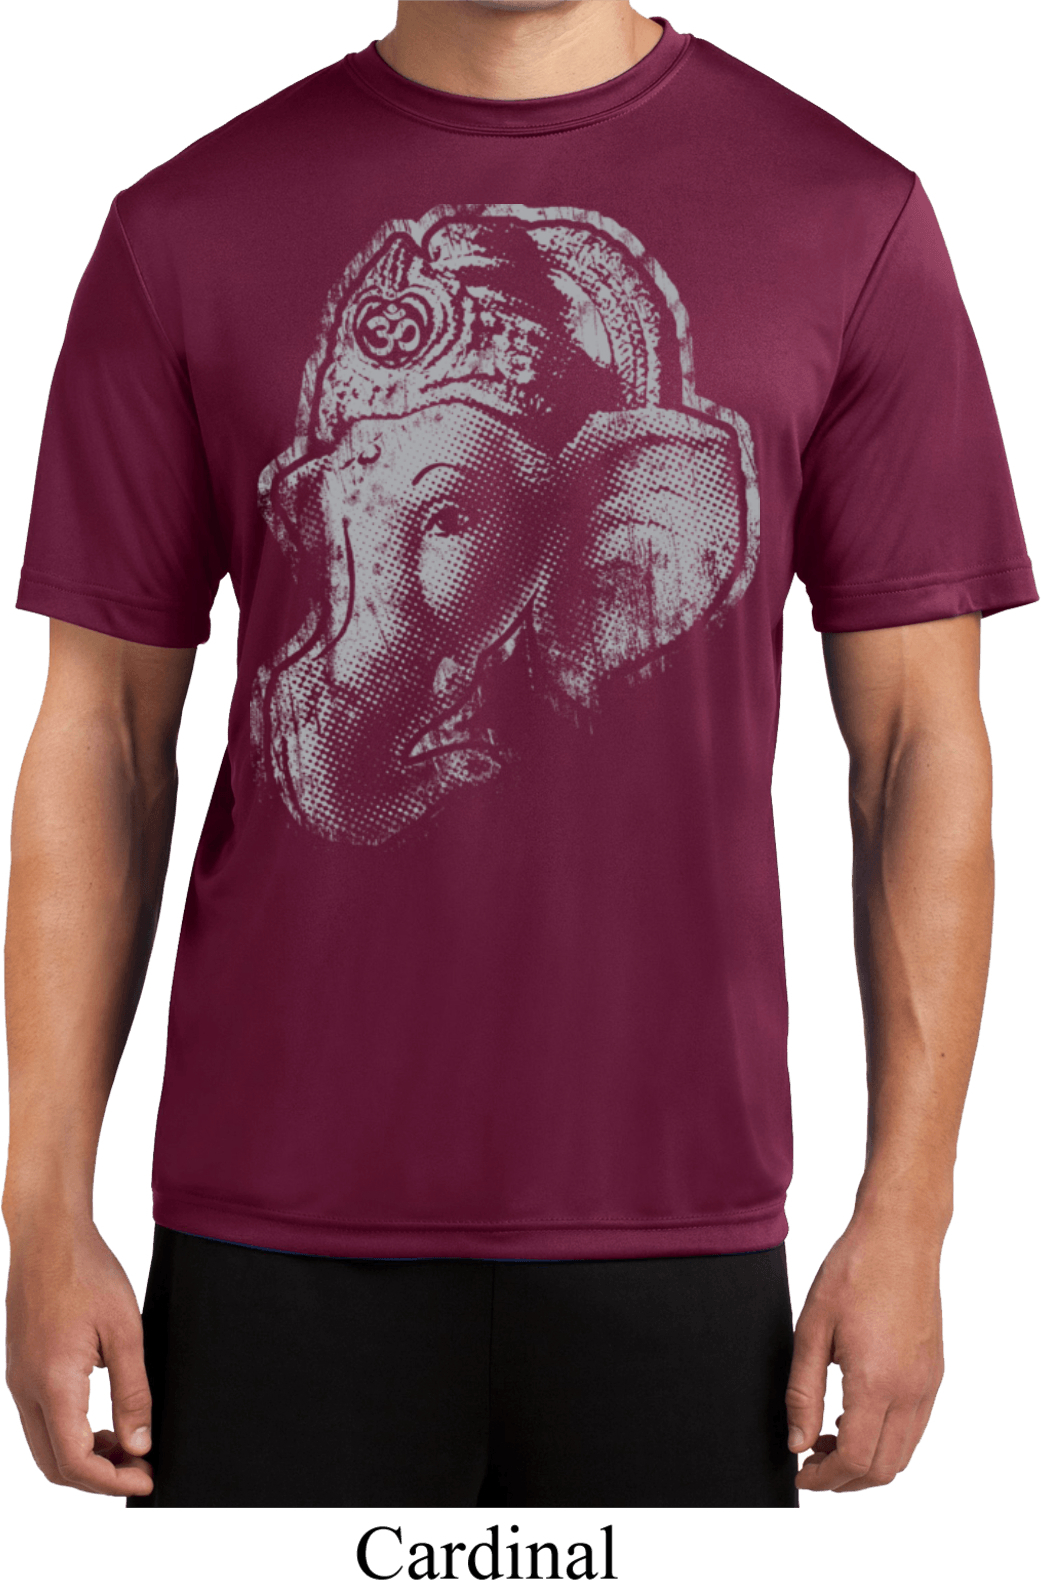 Mens yoga shirt big ganesha profile moisture wicking tee t for Sweat wicking t shirts